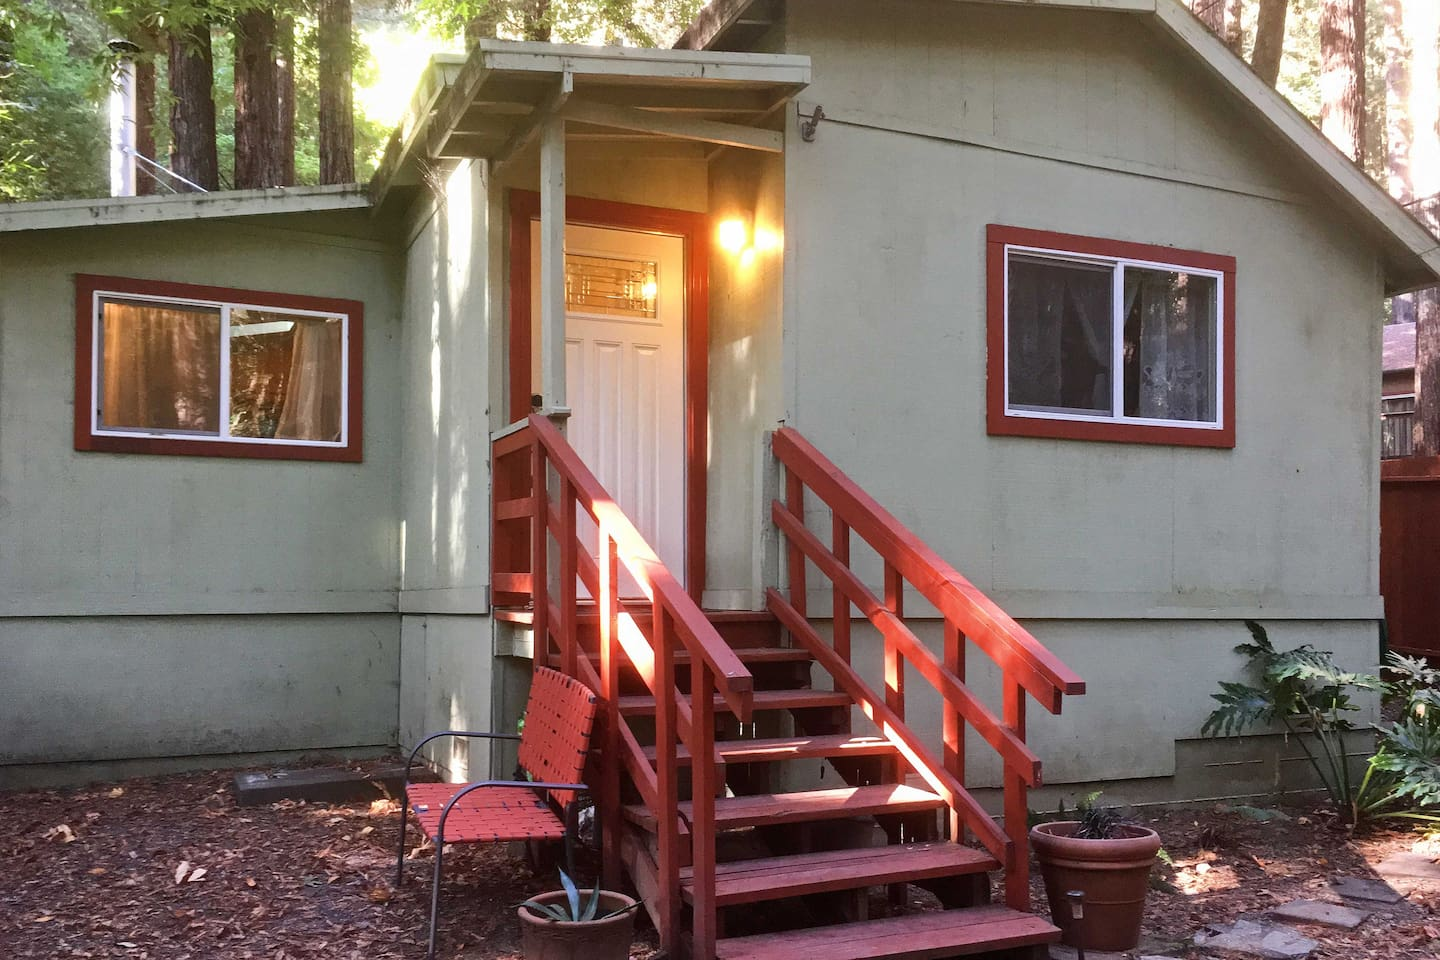 Step outside to relax in your private Redwood paradise!